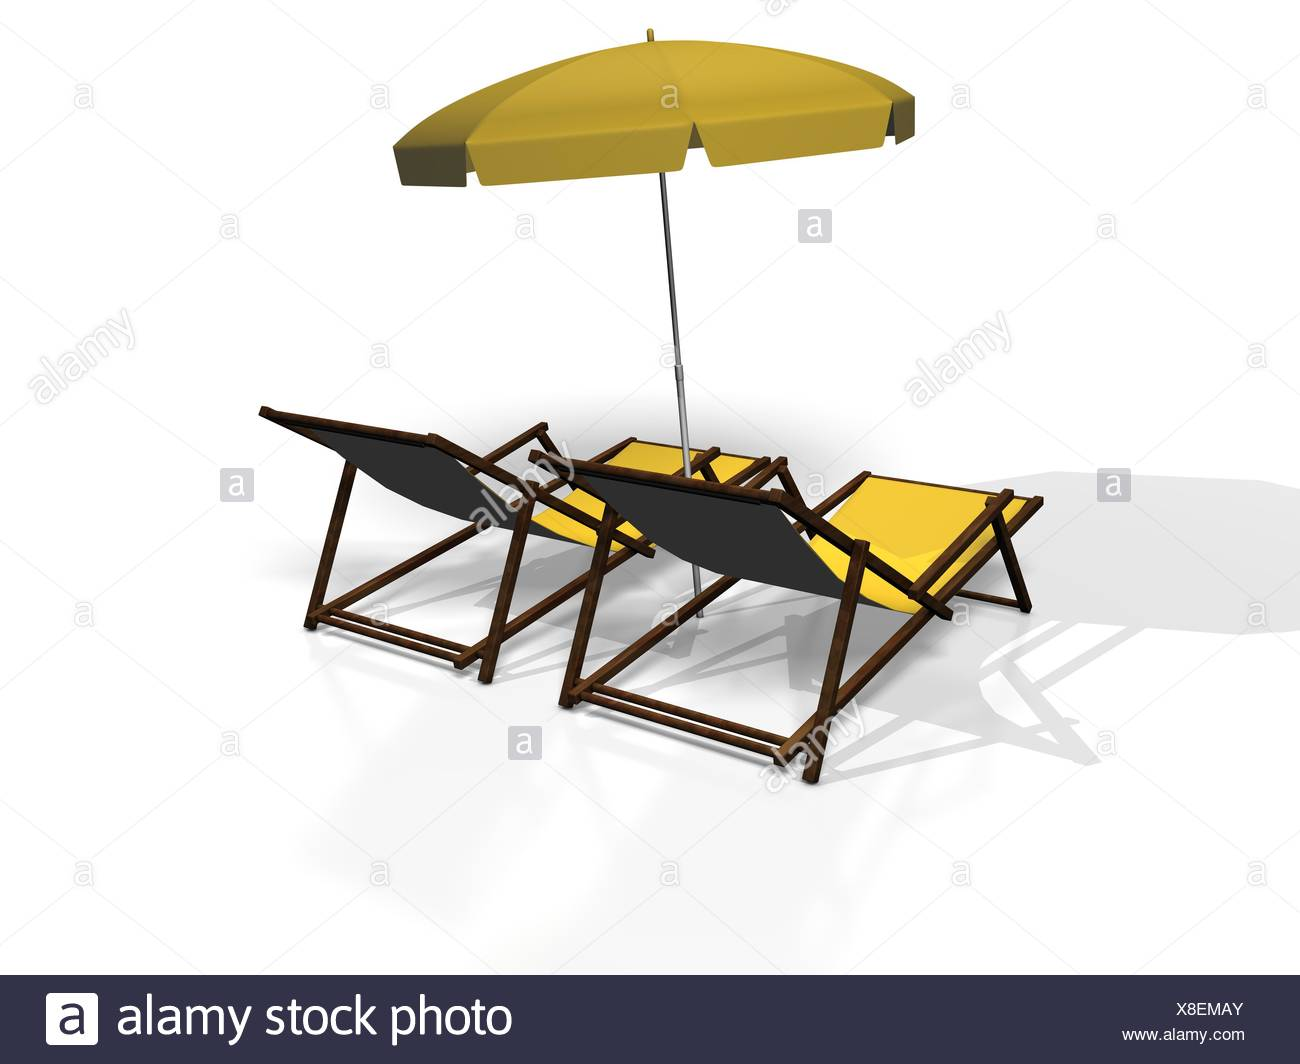 Relaxliegen Outdoor Relaxliege Stock Photos Relaxliege Stock Images Alamy